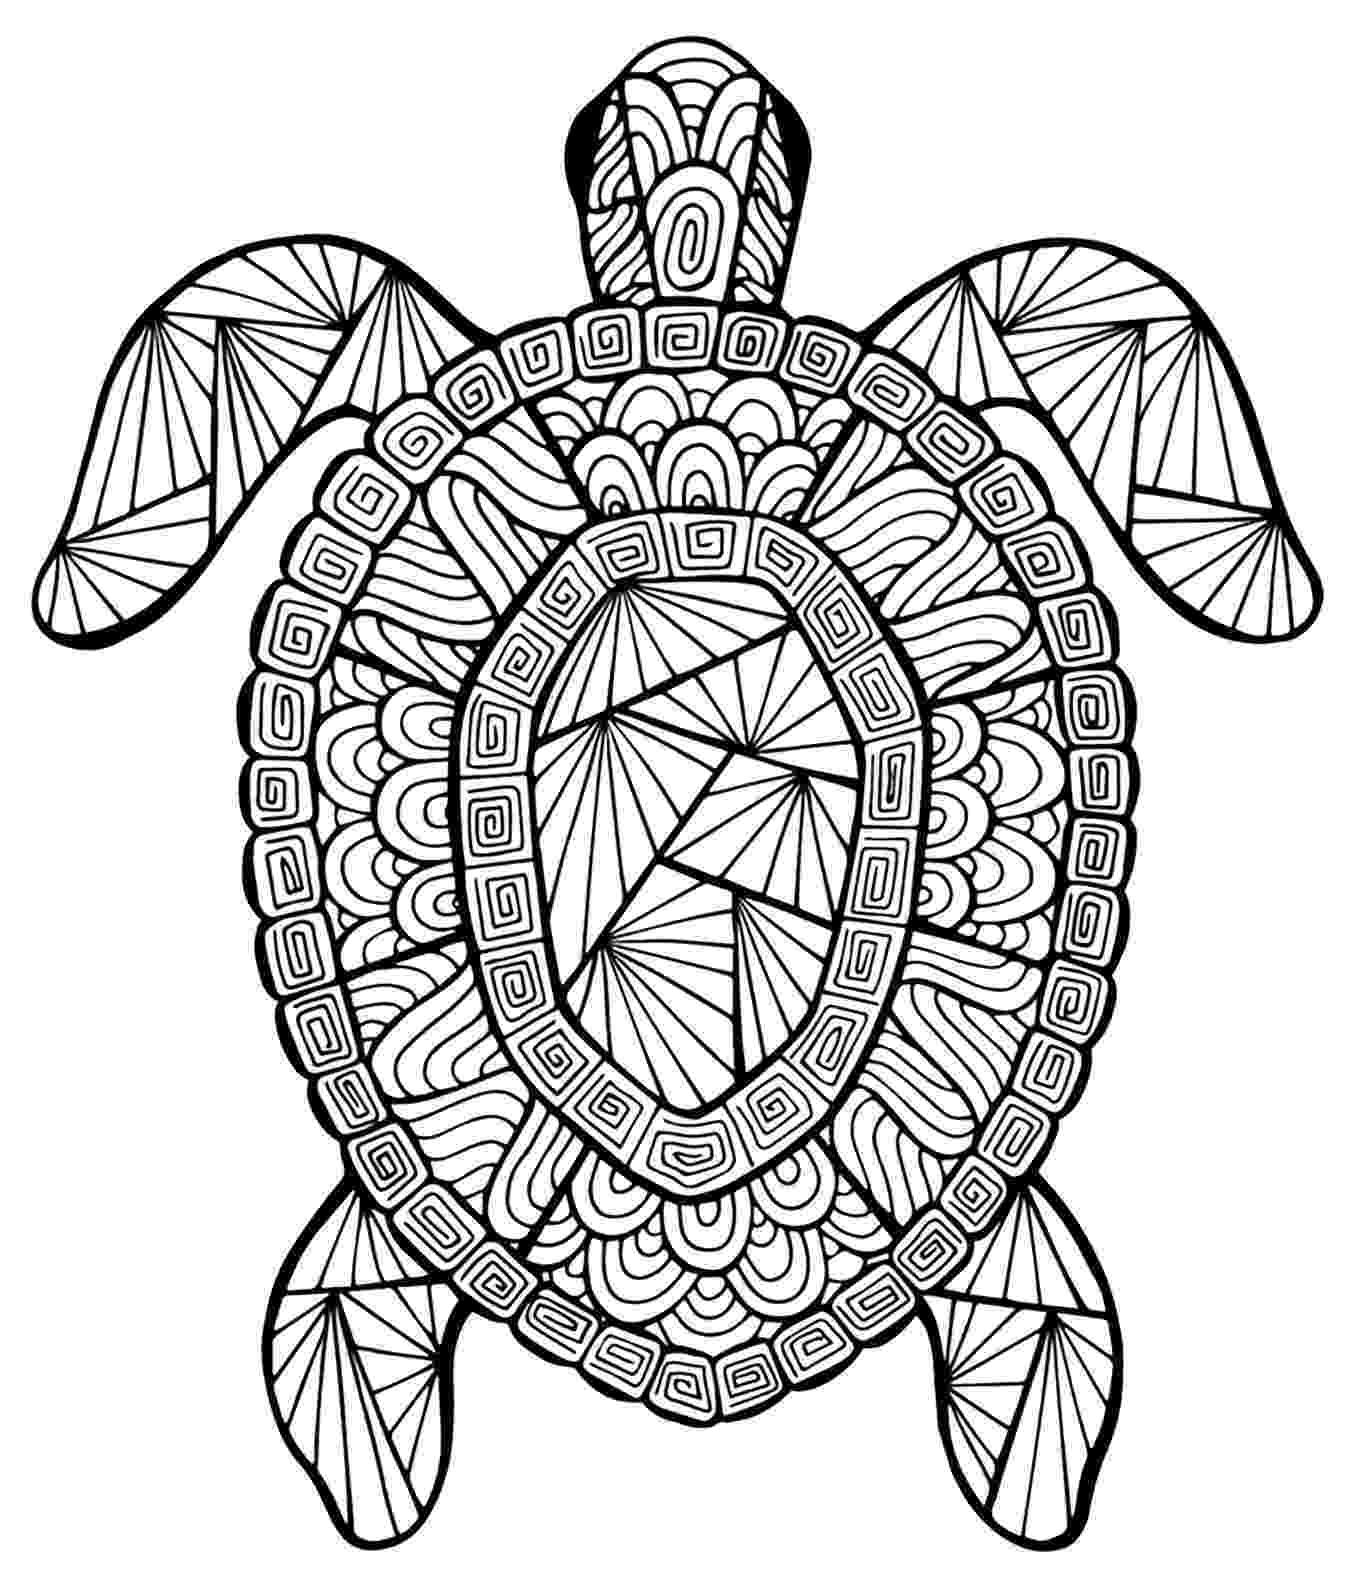 coloring pictures of turtles teenage mutant ninja turtles coloring pages best pictures turtles coloring of